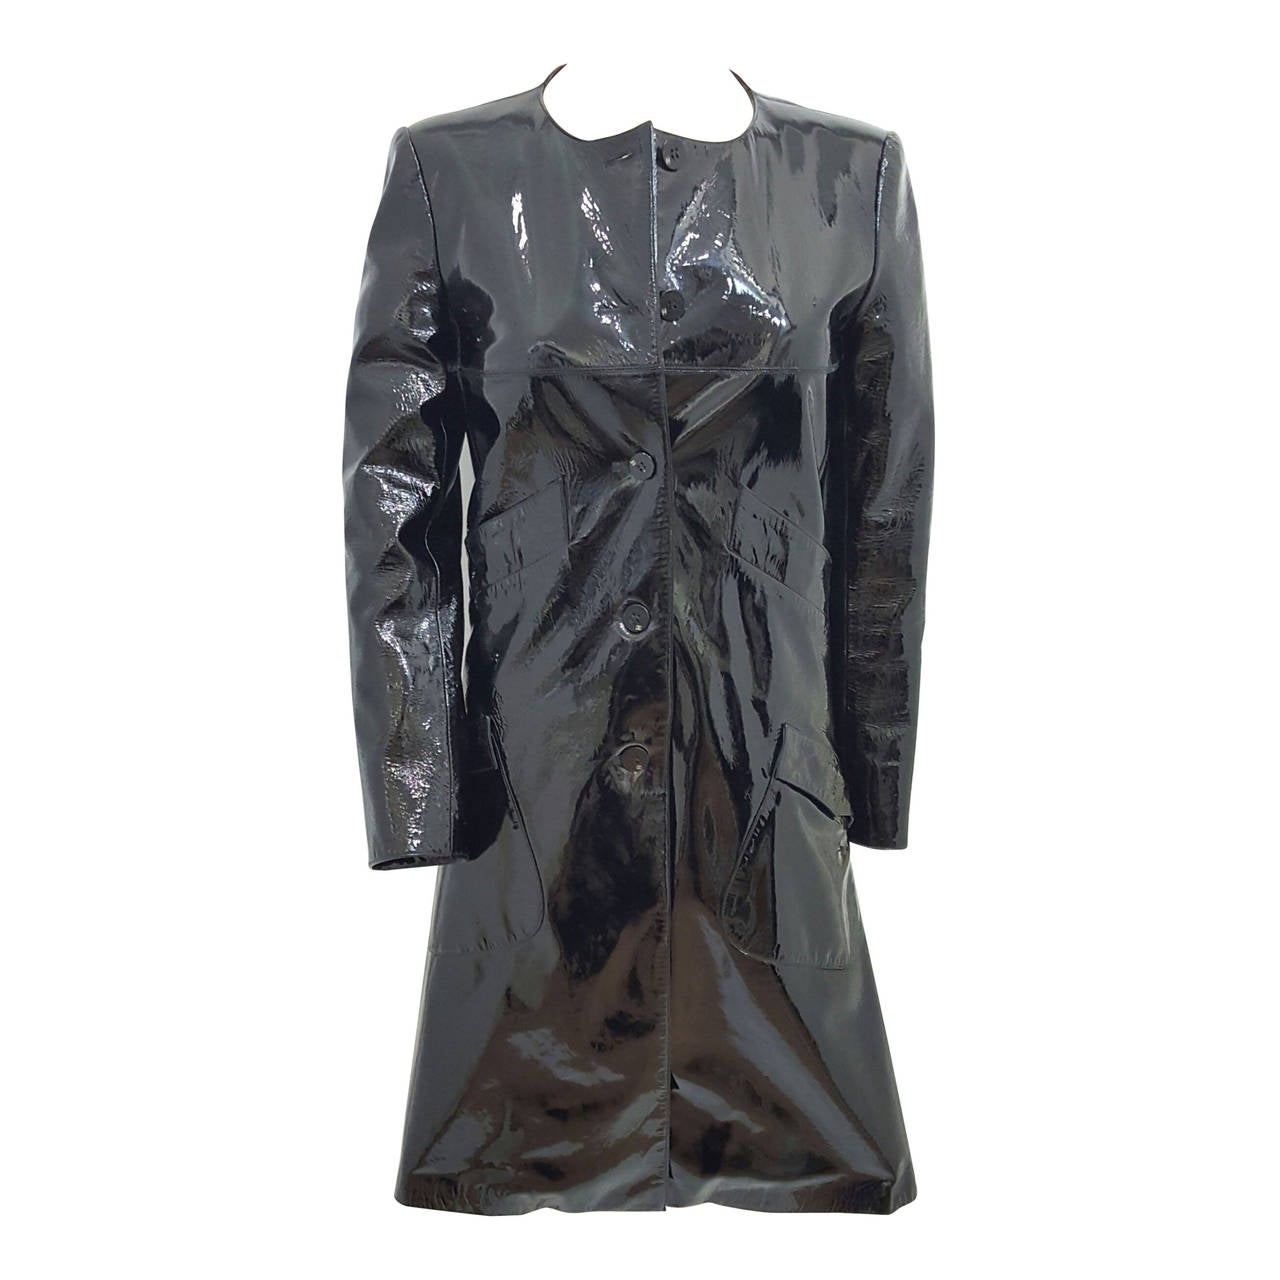 CHANEL Black Patent Leather Rain Coat With Sheered Rabbit Lining. Size 34